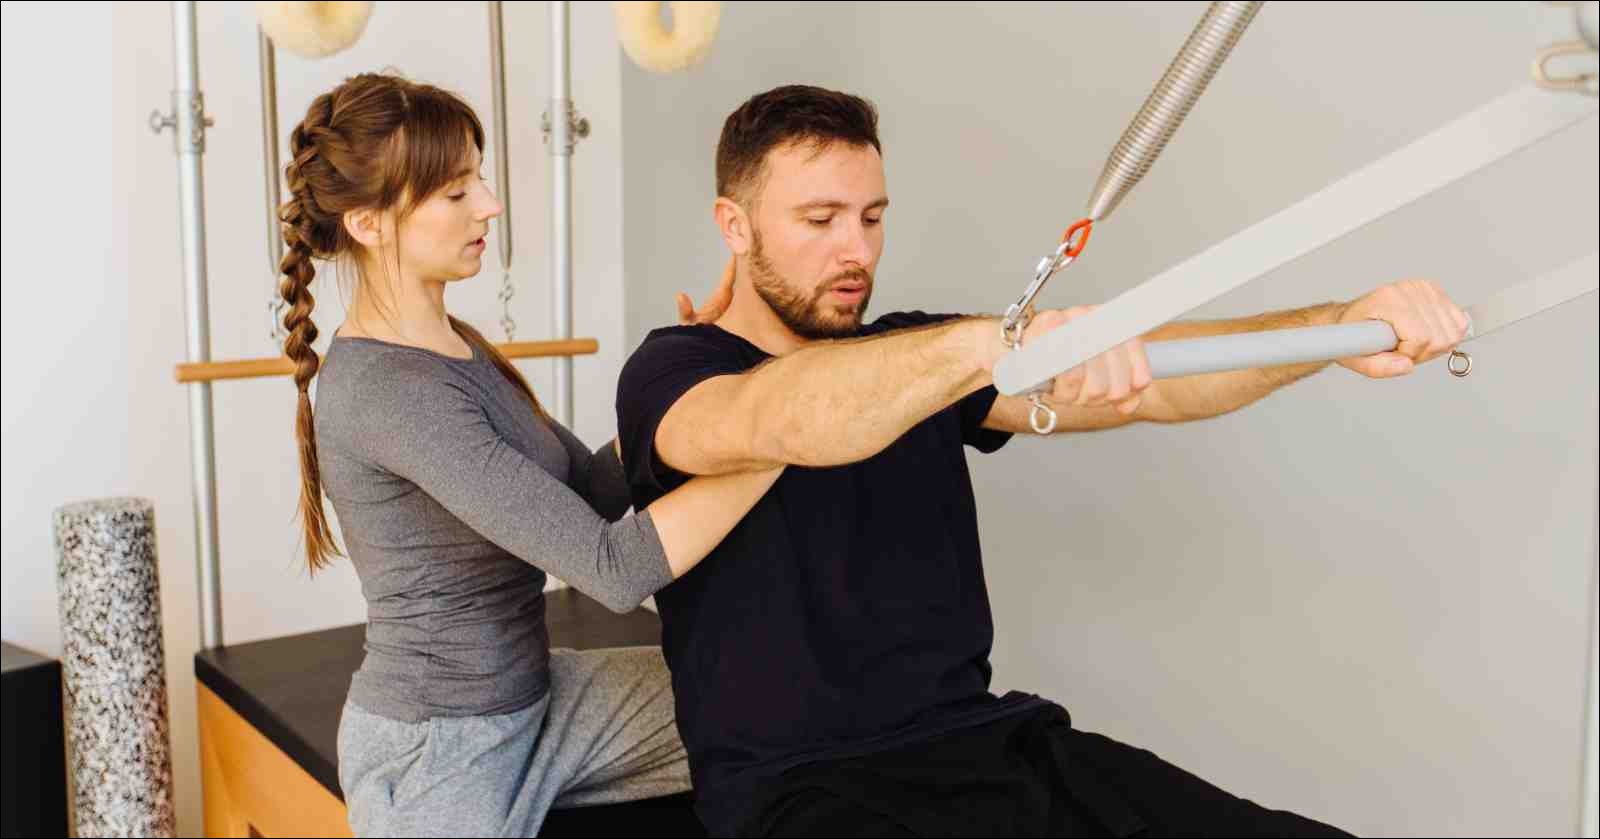 female instructor of pilates helping beard man workout in cadillac bed